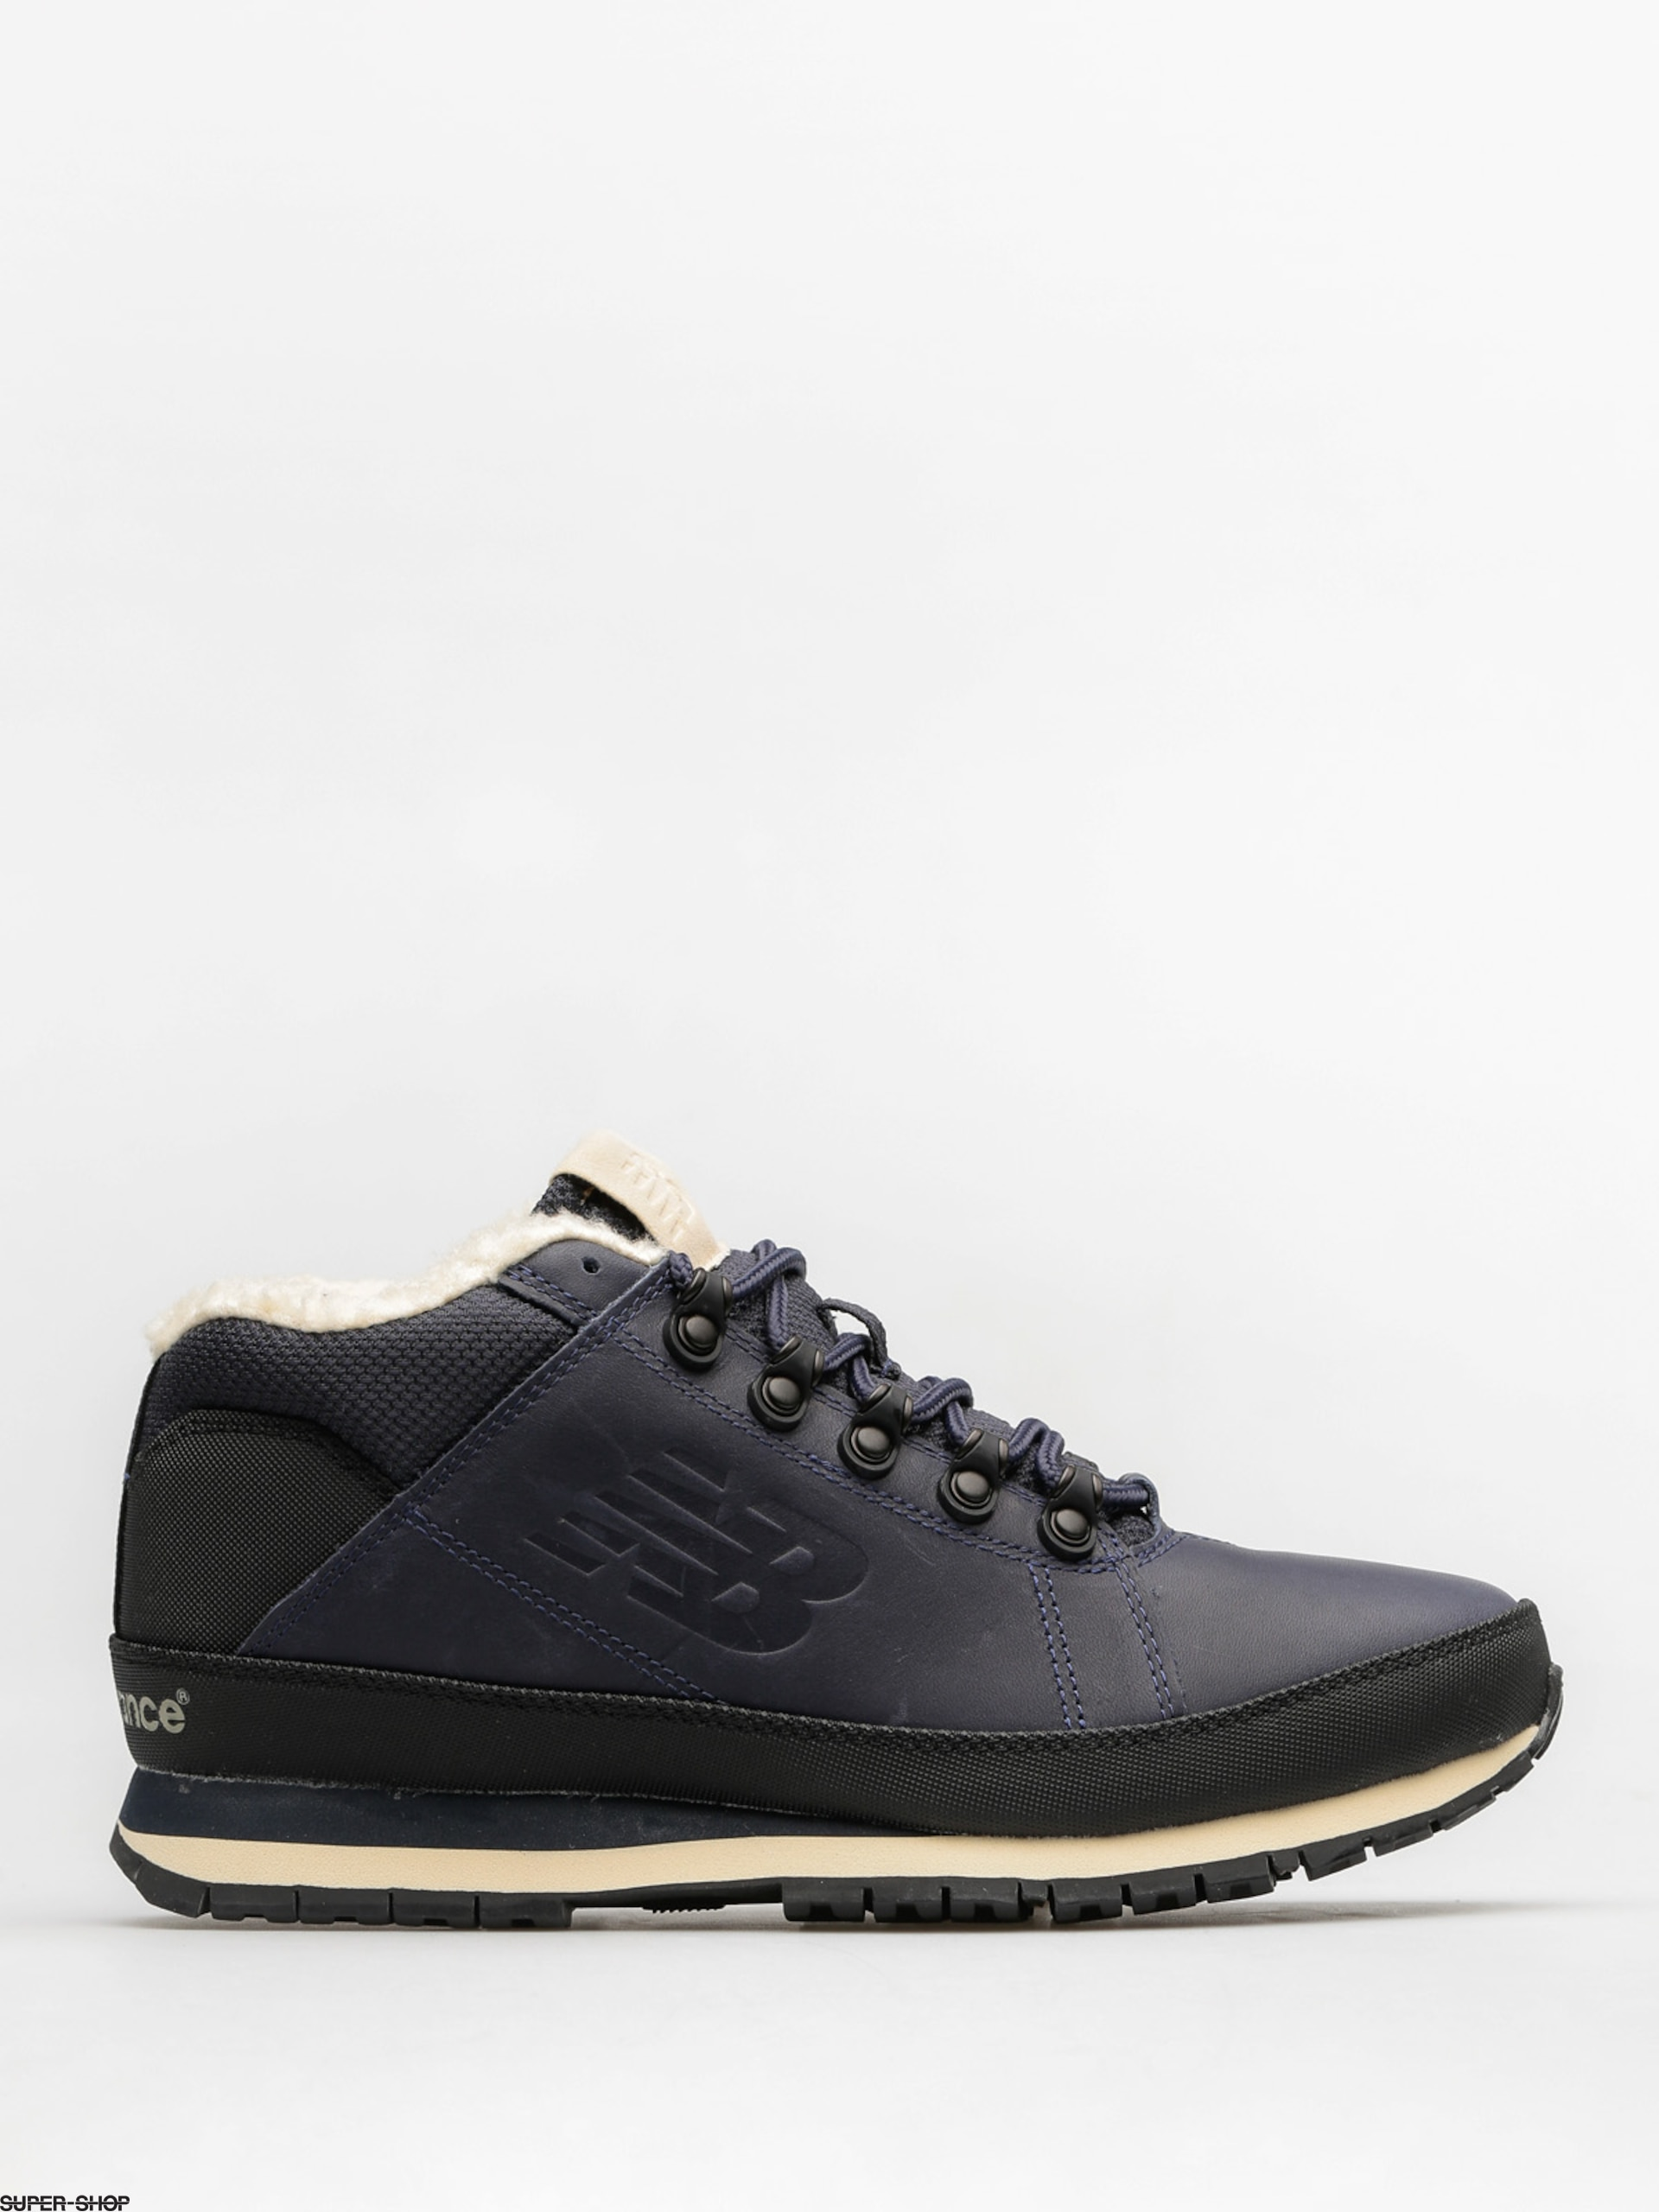 New Balance Winter shoes 754 (lfn)